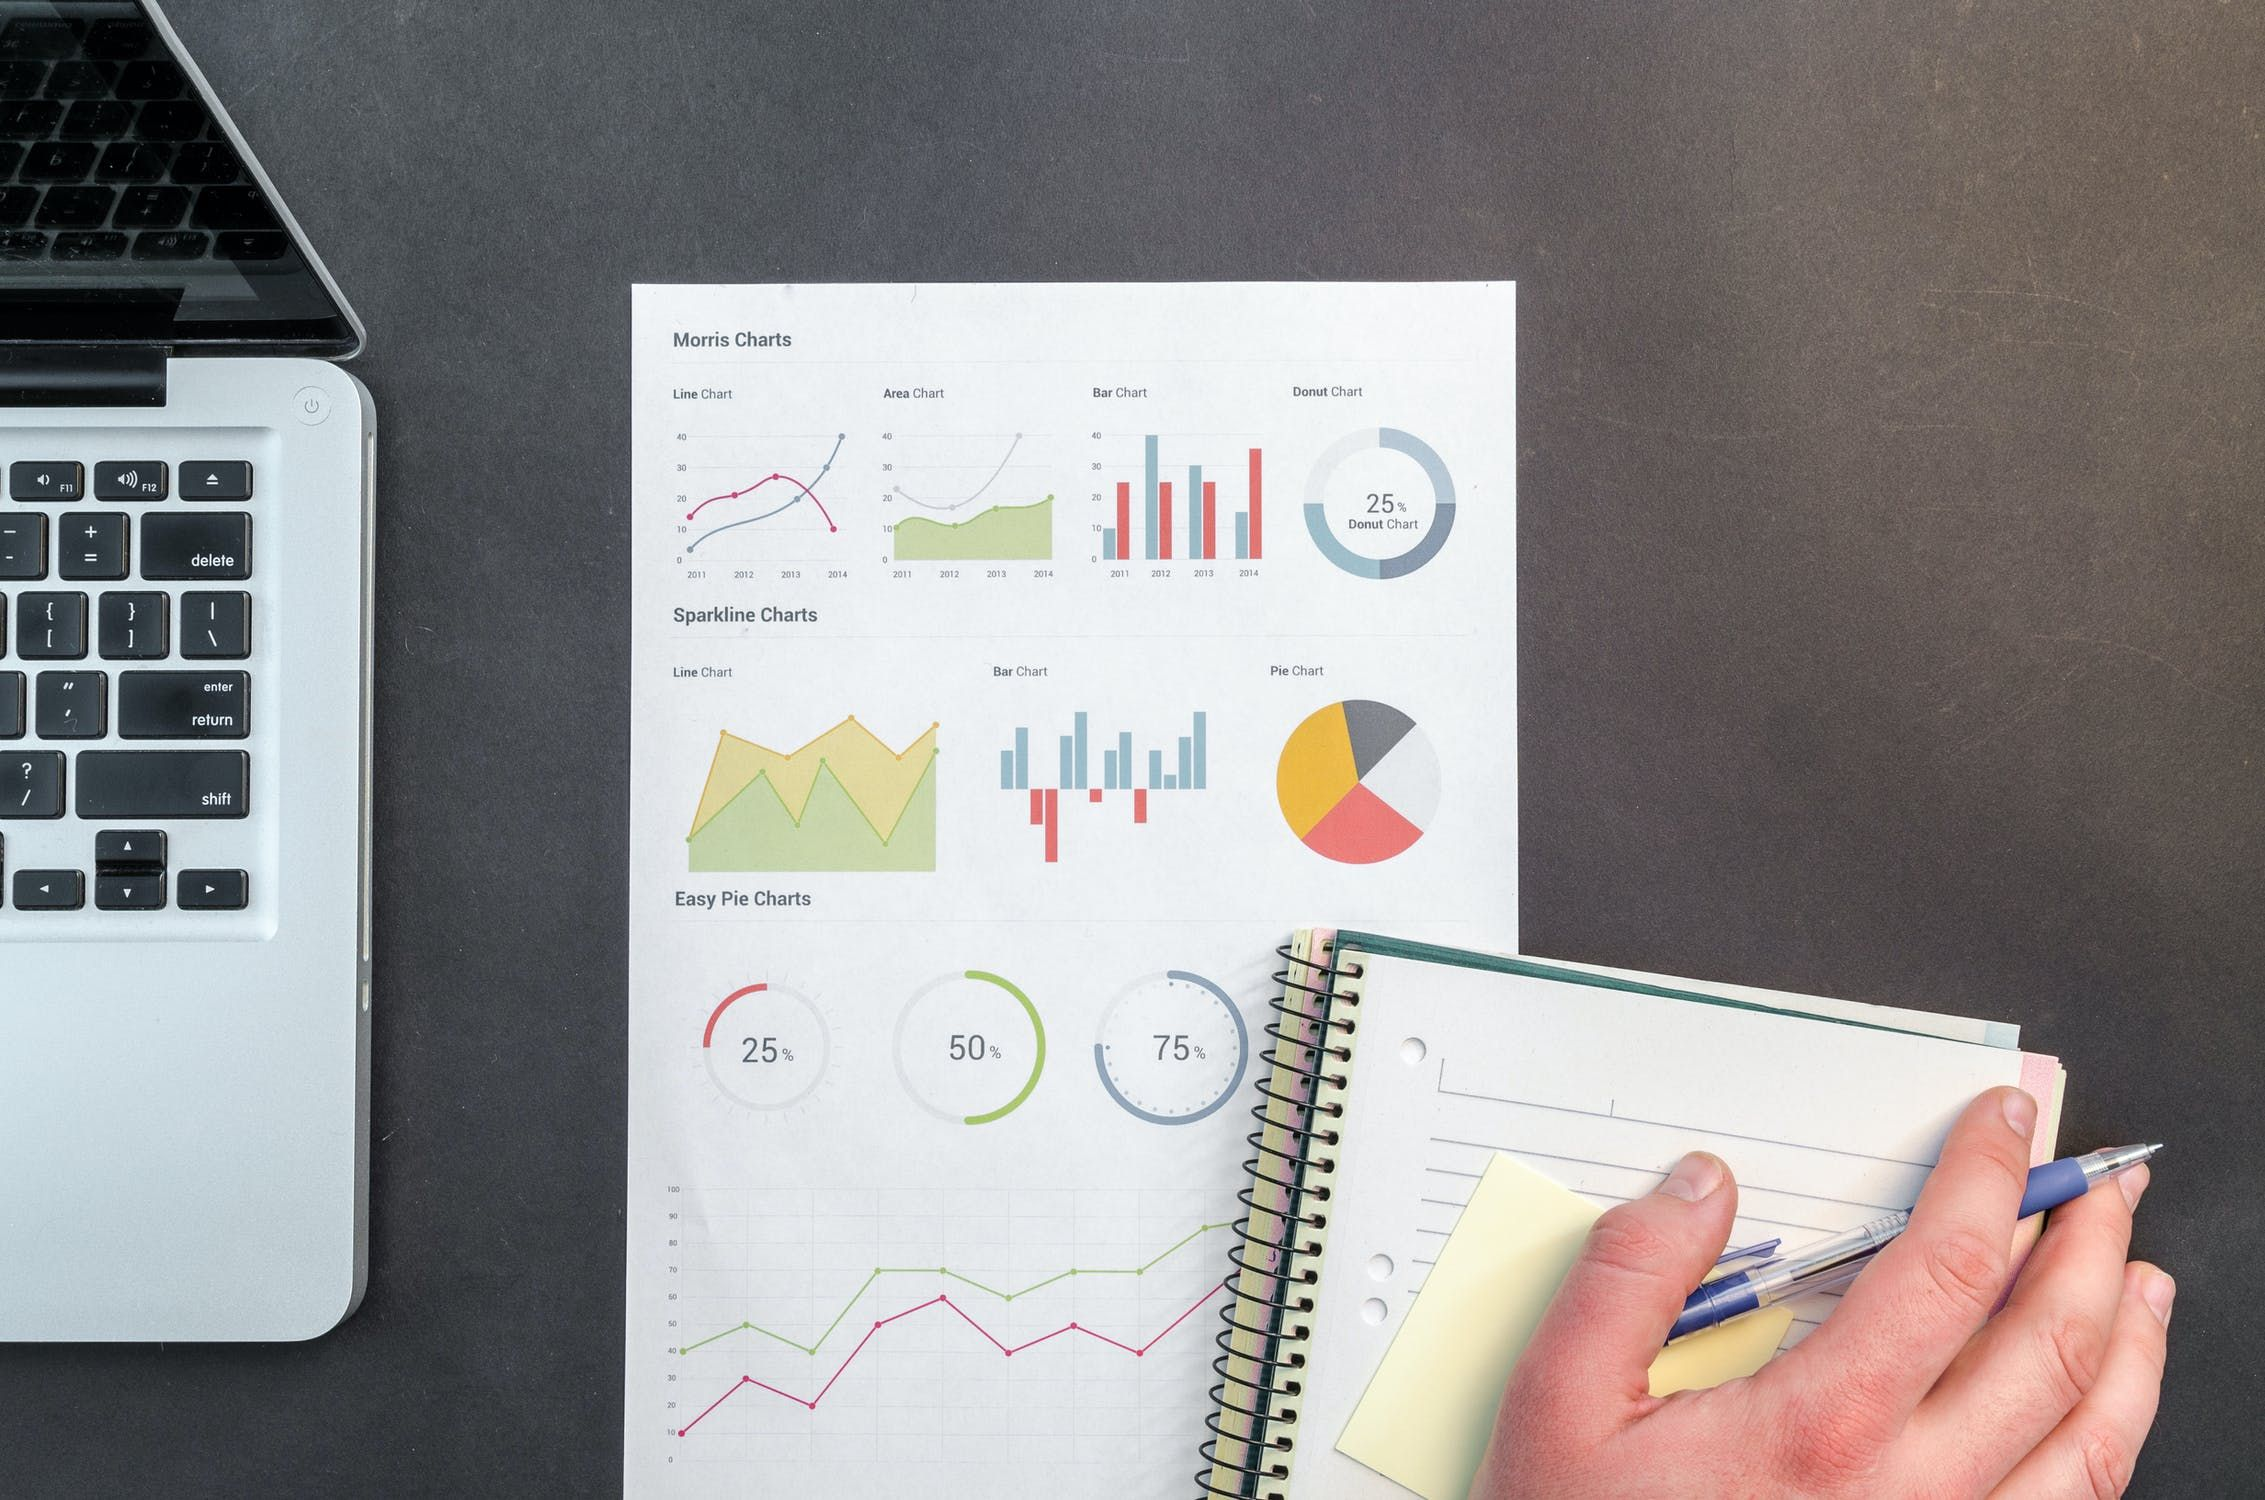 Essential Data Science Skills to Be a Data Scientist